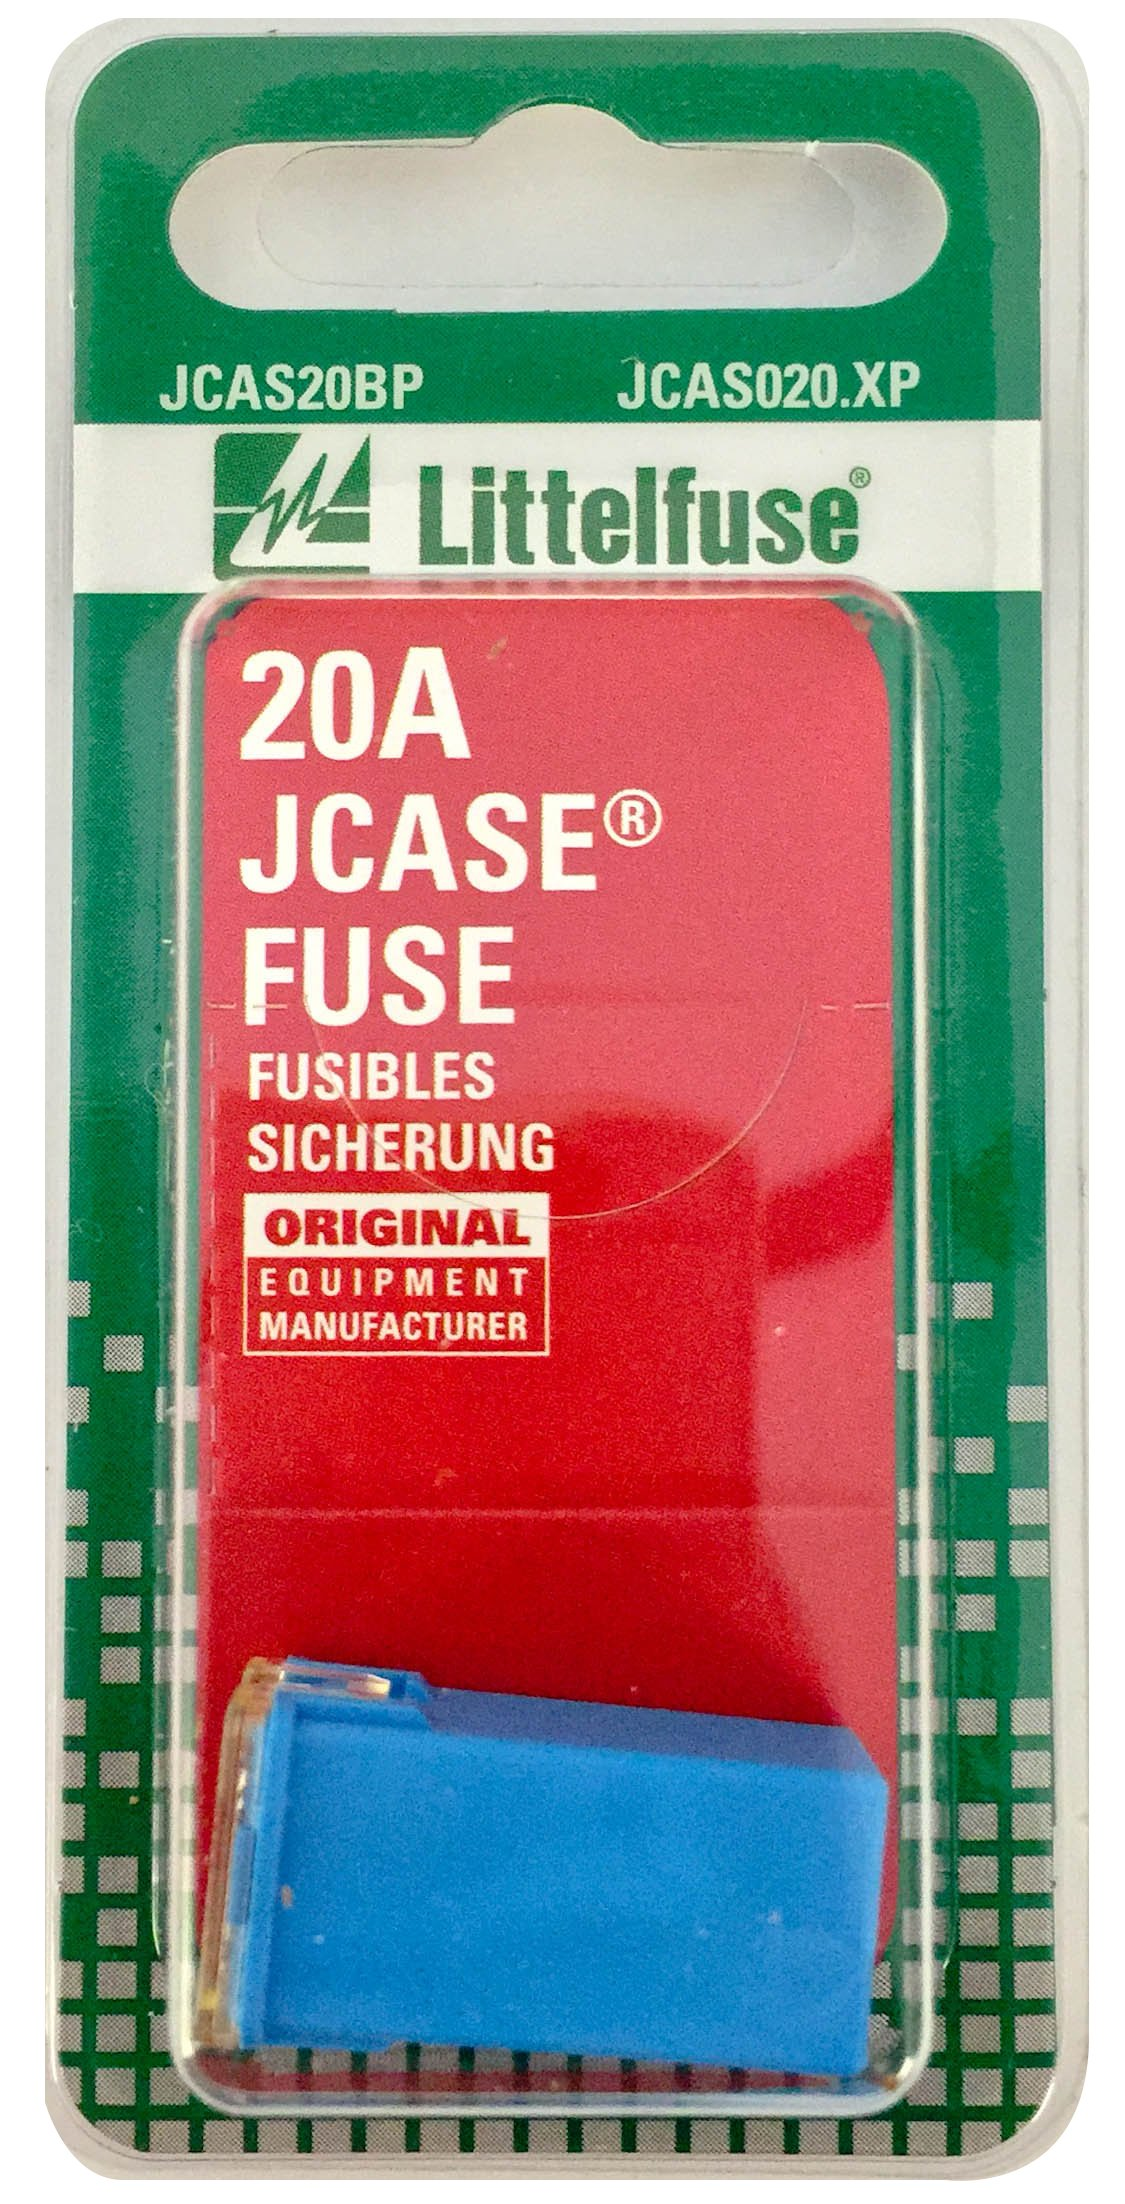 Littelfuse JCAS20BP JCASE 495 Series Automotive Type Cartridge Fuse by Littelfuse